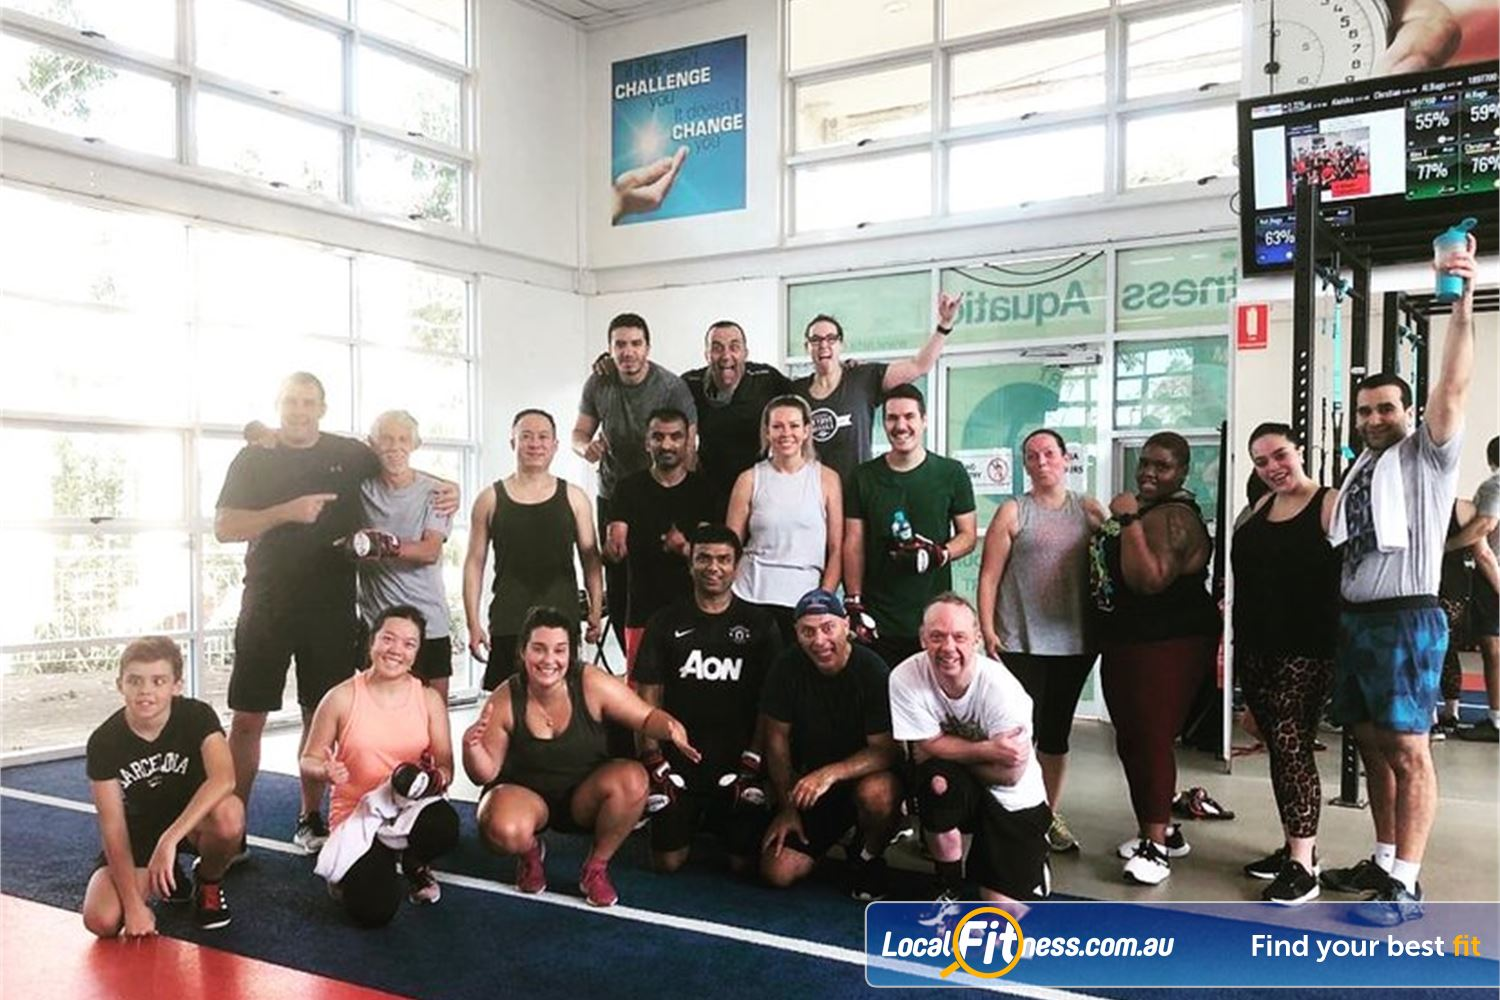 North Ryde Fitness & Aquatic Near Marsfield Come see why North Ryde HIIT sessions and HighLow is the place to go!